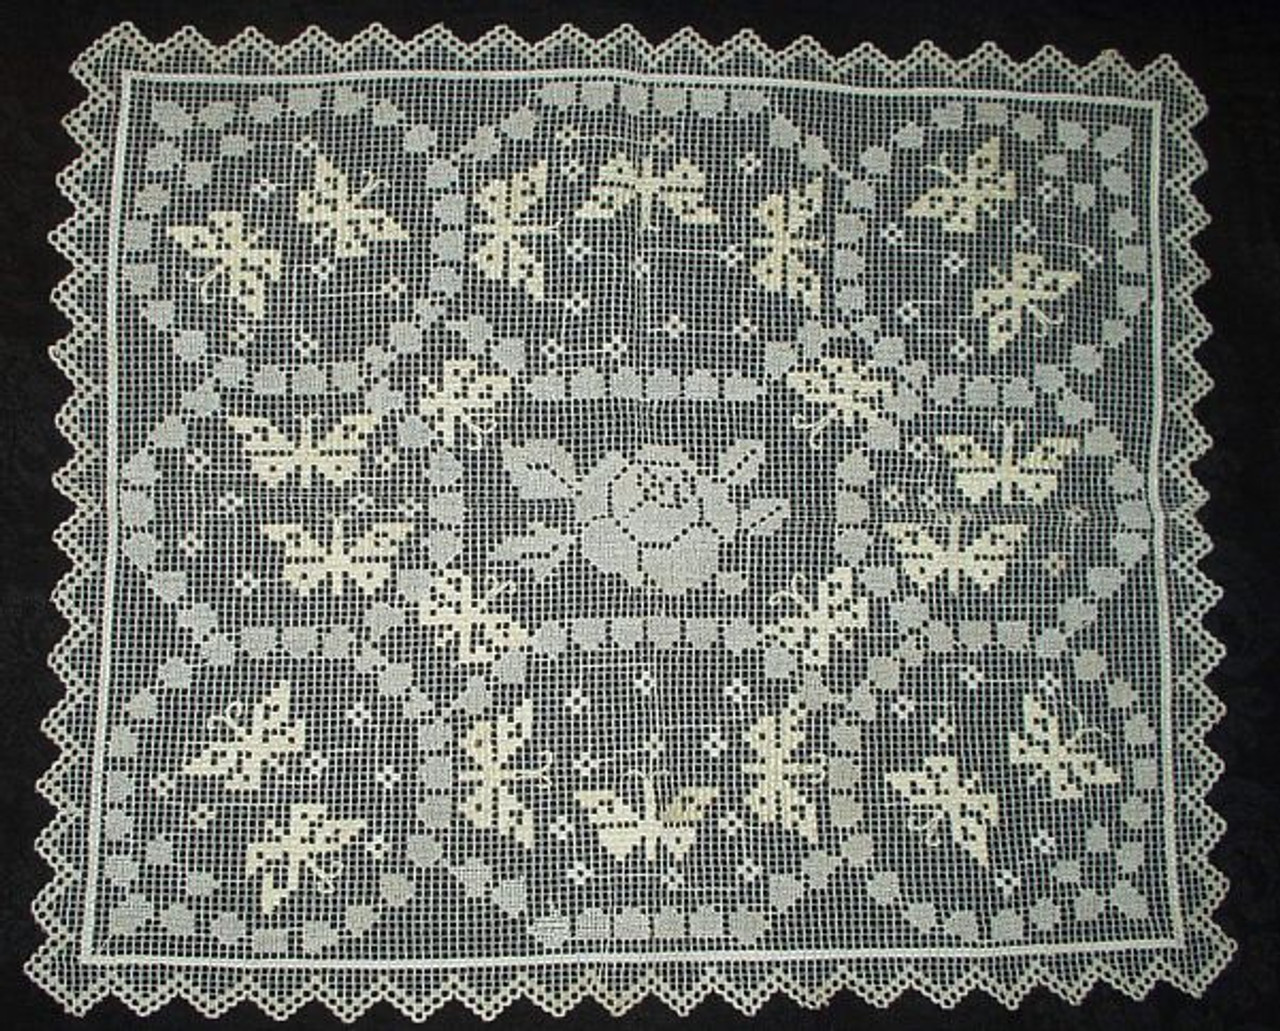 Antique Vintage 1920 Darned Net Lace Butterfly Rose Table Doily